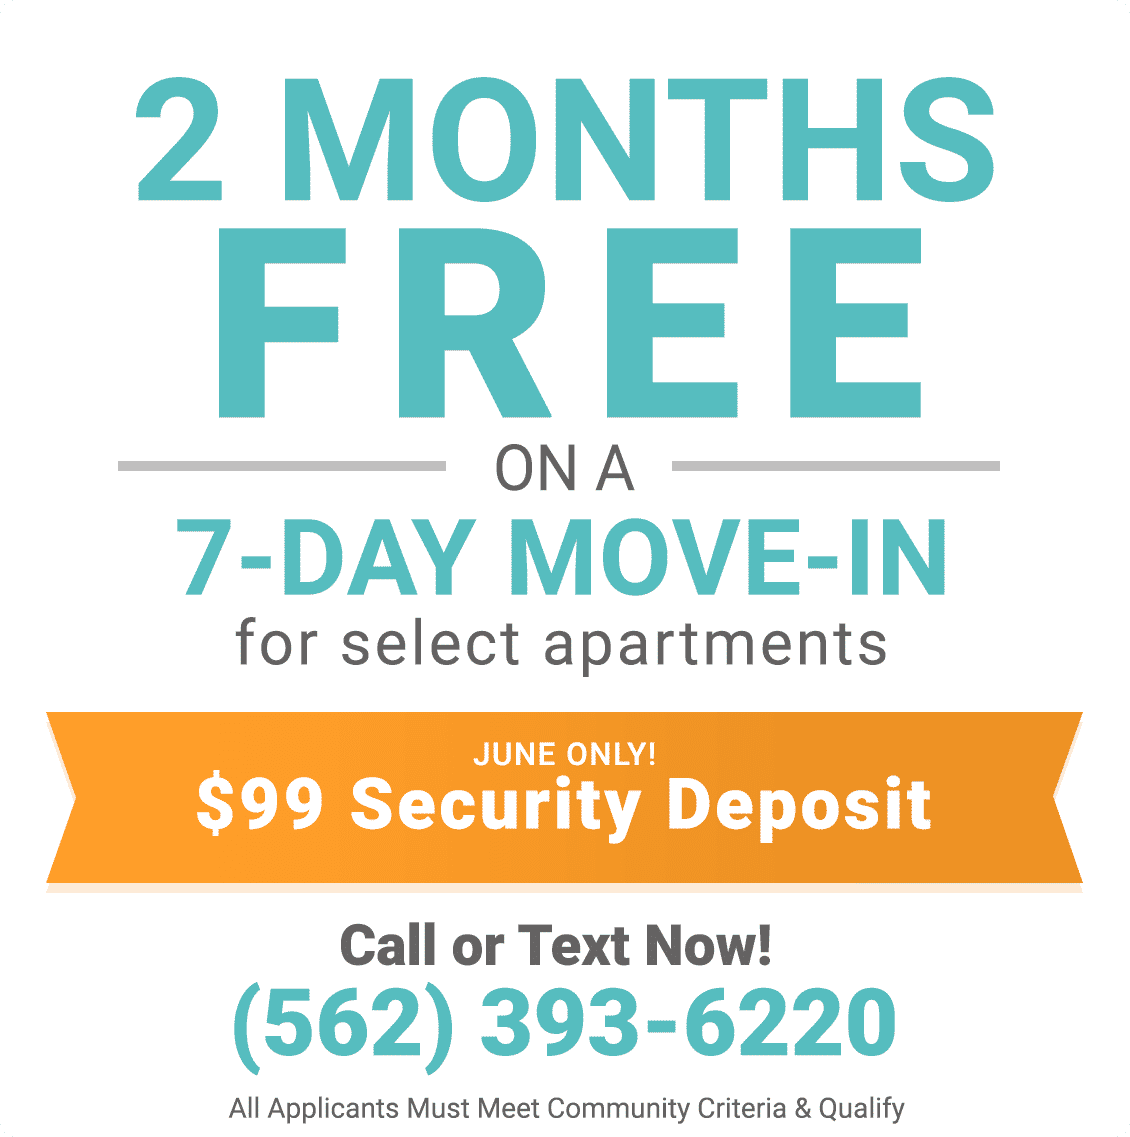 2 months free on a 7-day move-in for select apartments. Also, $99 Security Deposit, only during June